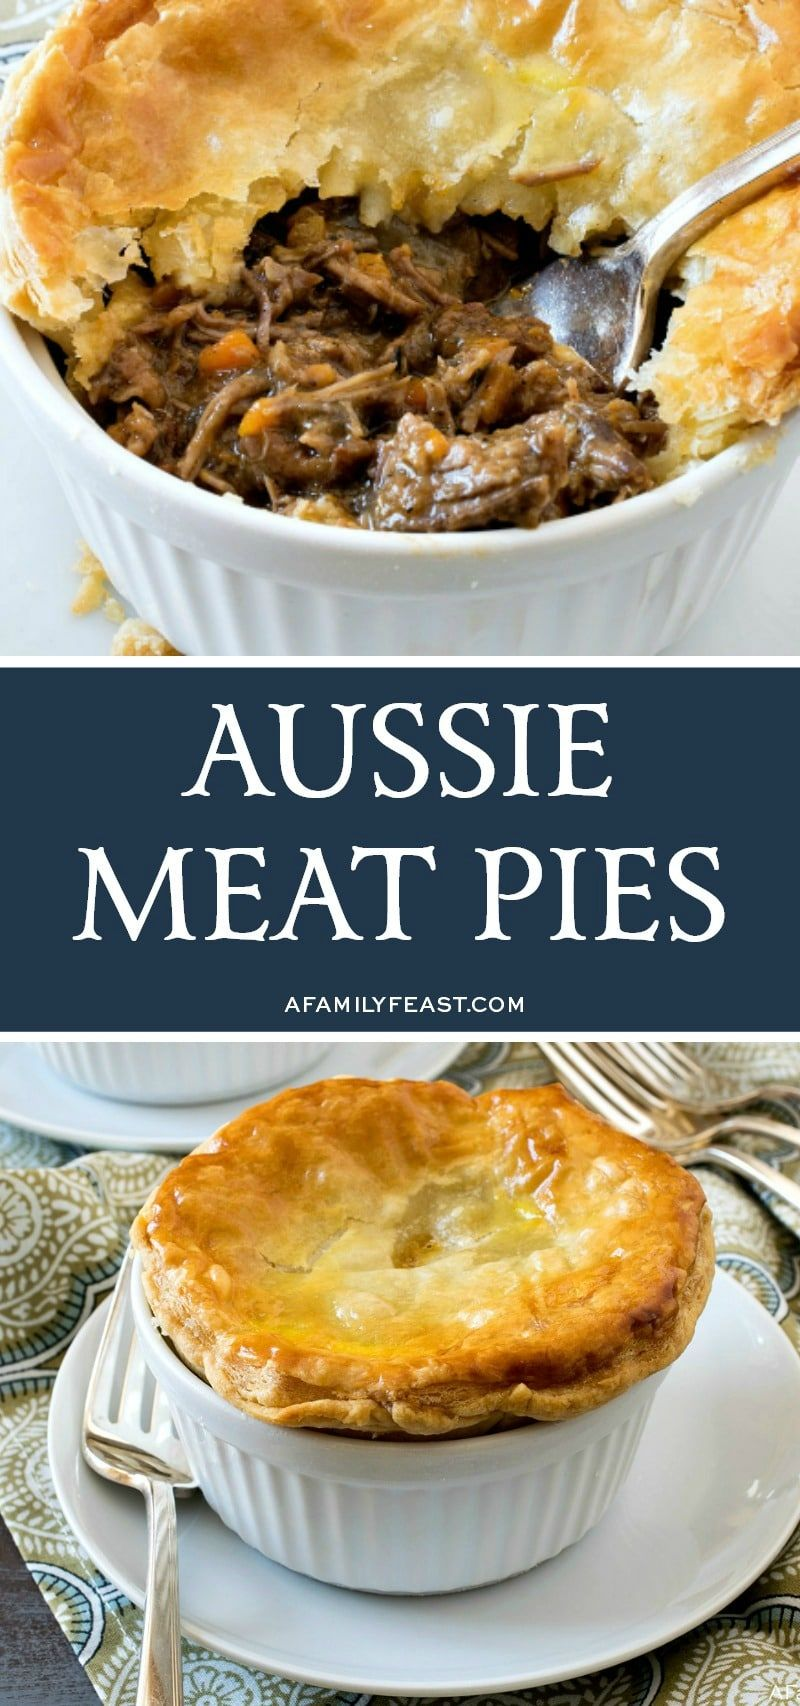 Aussie Meat Pies Are Filled With Beef And Vegetables In A Rich And Delicious Gravy The Entire Family Is Sure To L Australian Meat Pie Meat Pie Meat Pie Recipe